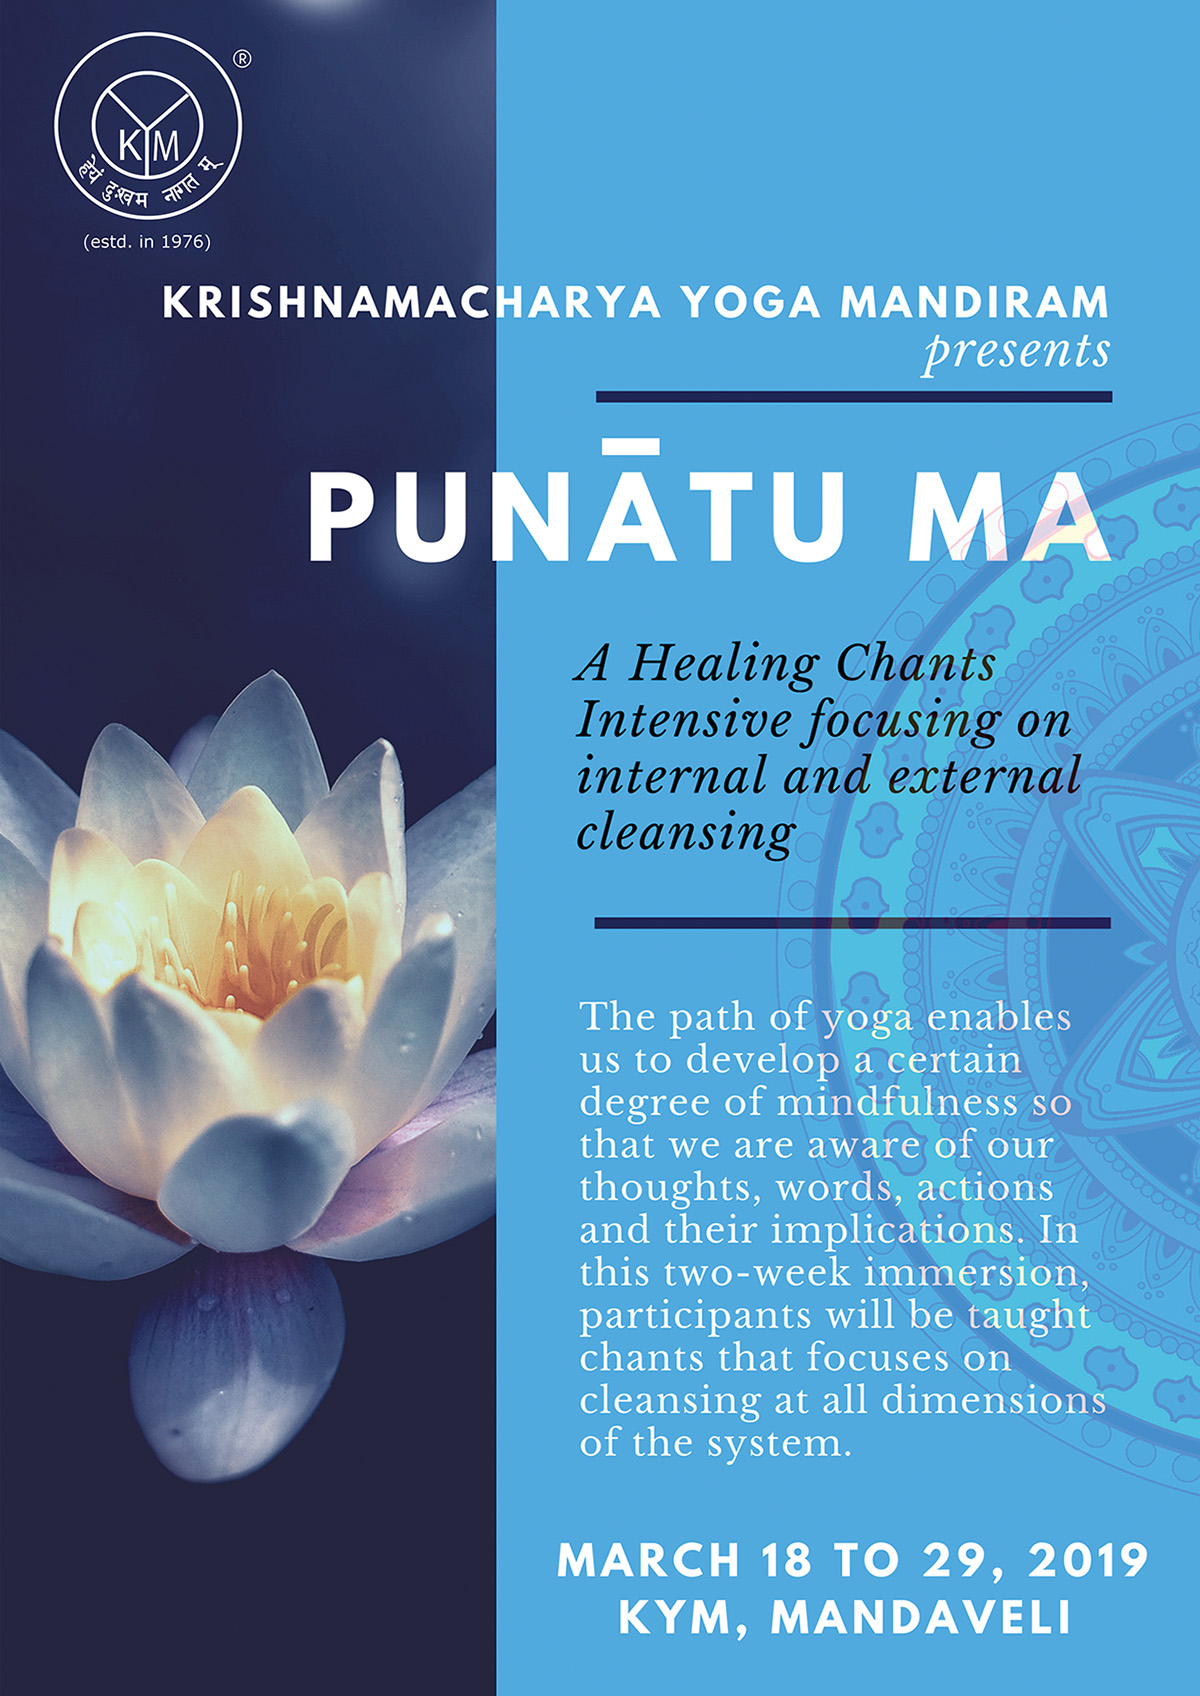 Punātu Ma | A Healing Chants Intensive focusing on internal and external cleansing